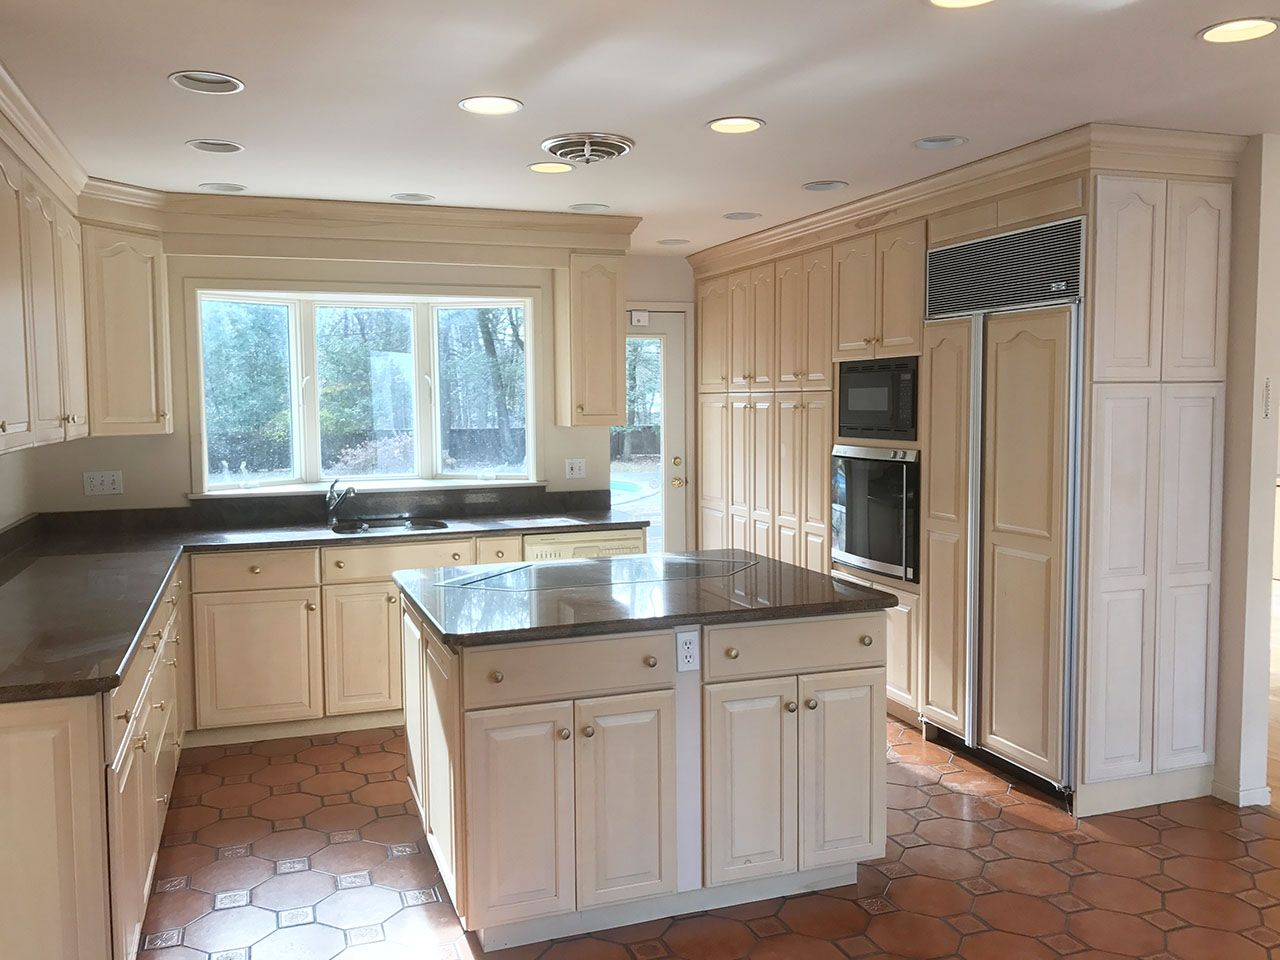 Additional photo for property listing at 362 Concord Road 362 Concord Road Weston, Massachusetts,02493 Amerika Birleşik Devletleri